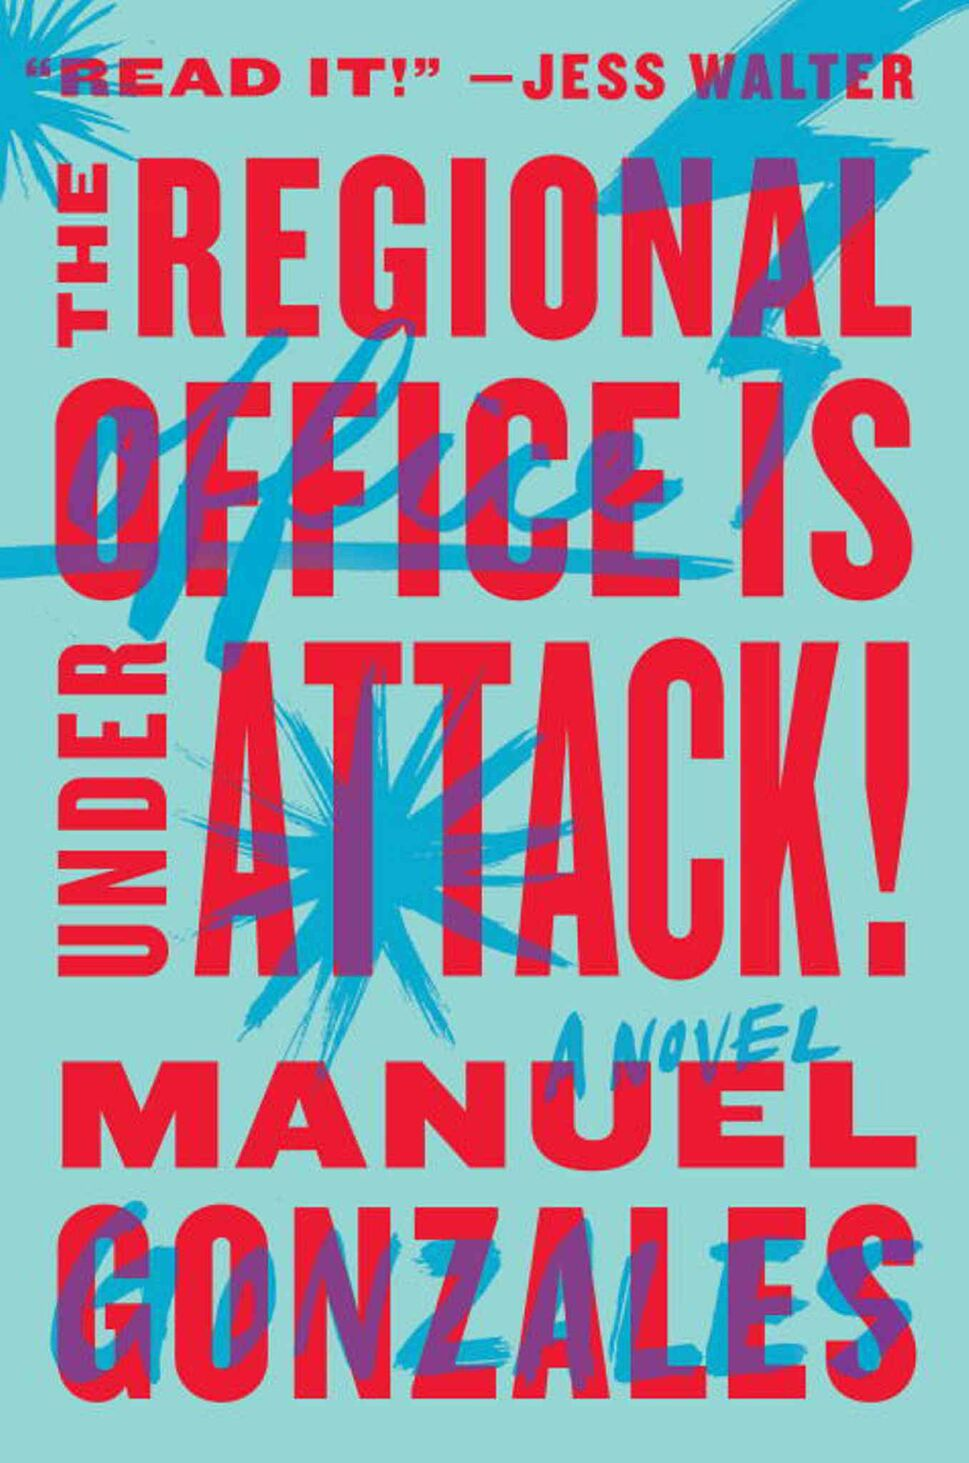 <h3>The Regional Office is Under Attack!</h3> <br/> By Manuel Gonzales <br/> <strong>The fight scenes are fast and inventive, but it's the dark way they're grounded in banal office politics and teenage angst that makes this such a fun read.</strong> <br/> — Alan MacKenzie